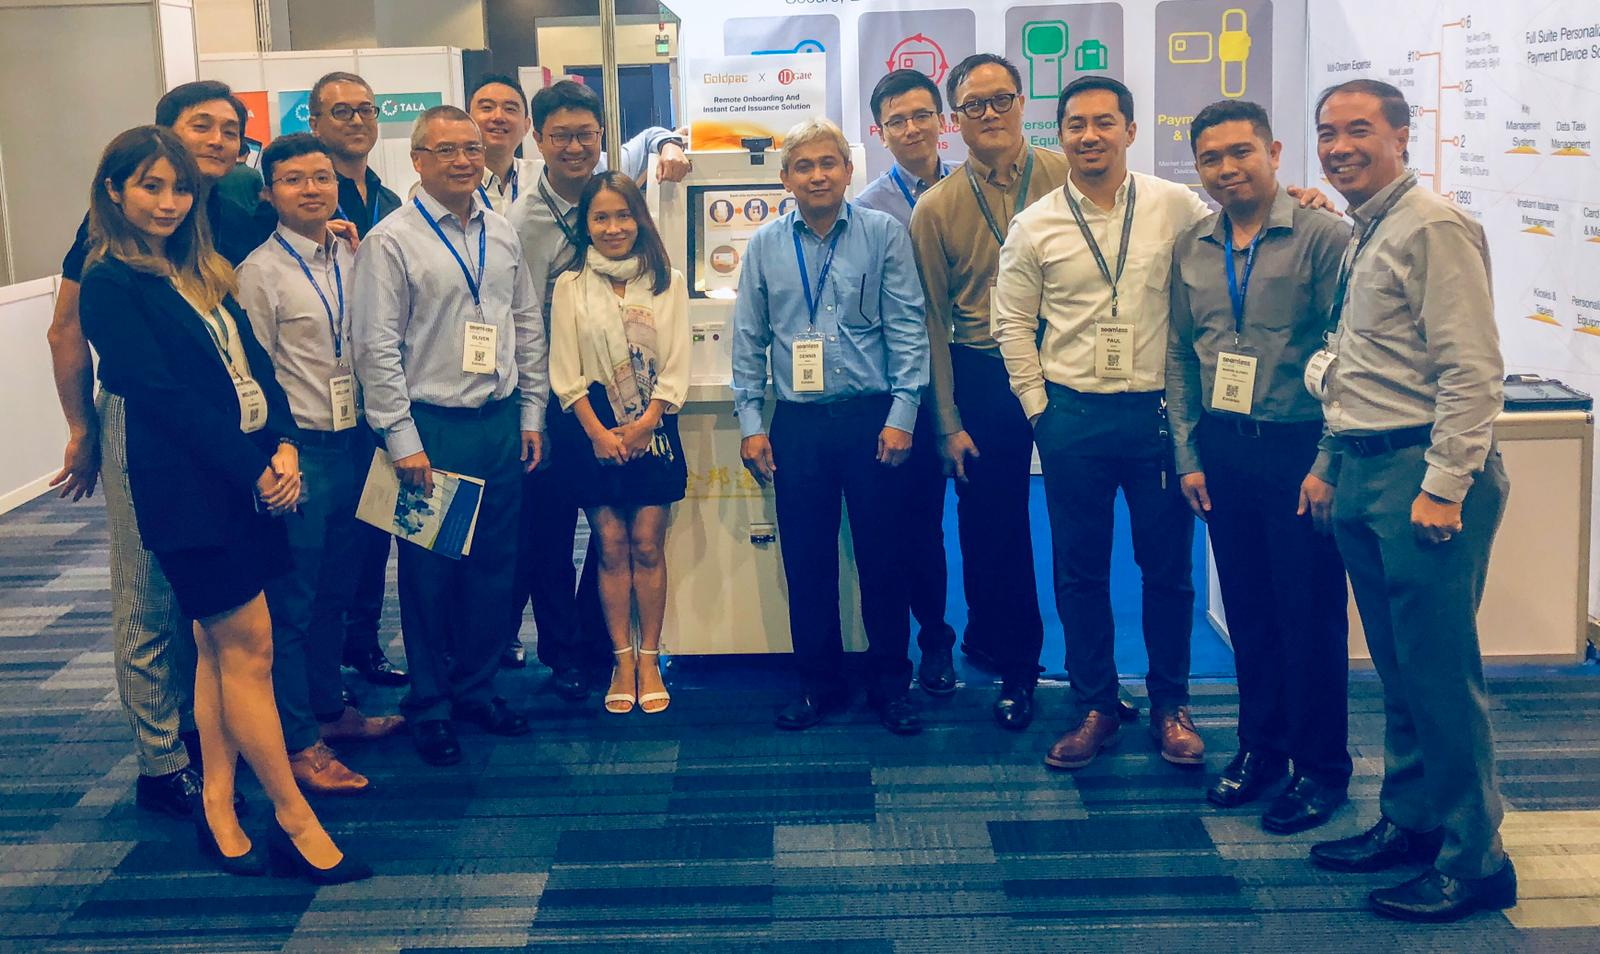 EVENTS: PHILIPPINE ACCESS EVENT PARTICIPATE WITH GOLDPAC